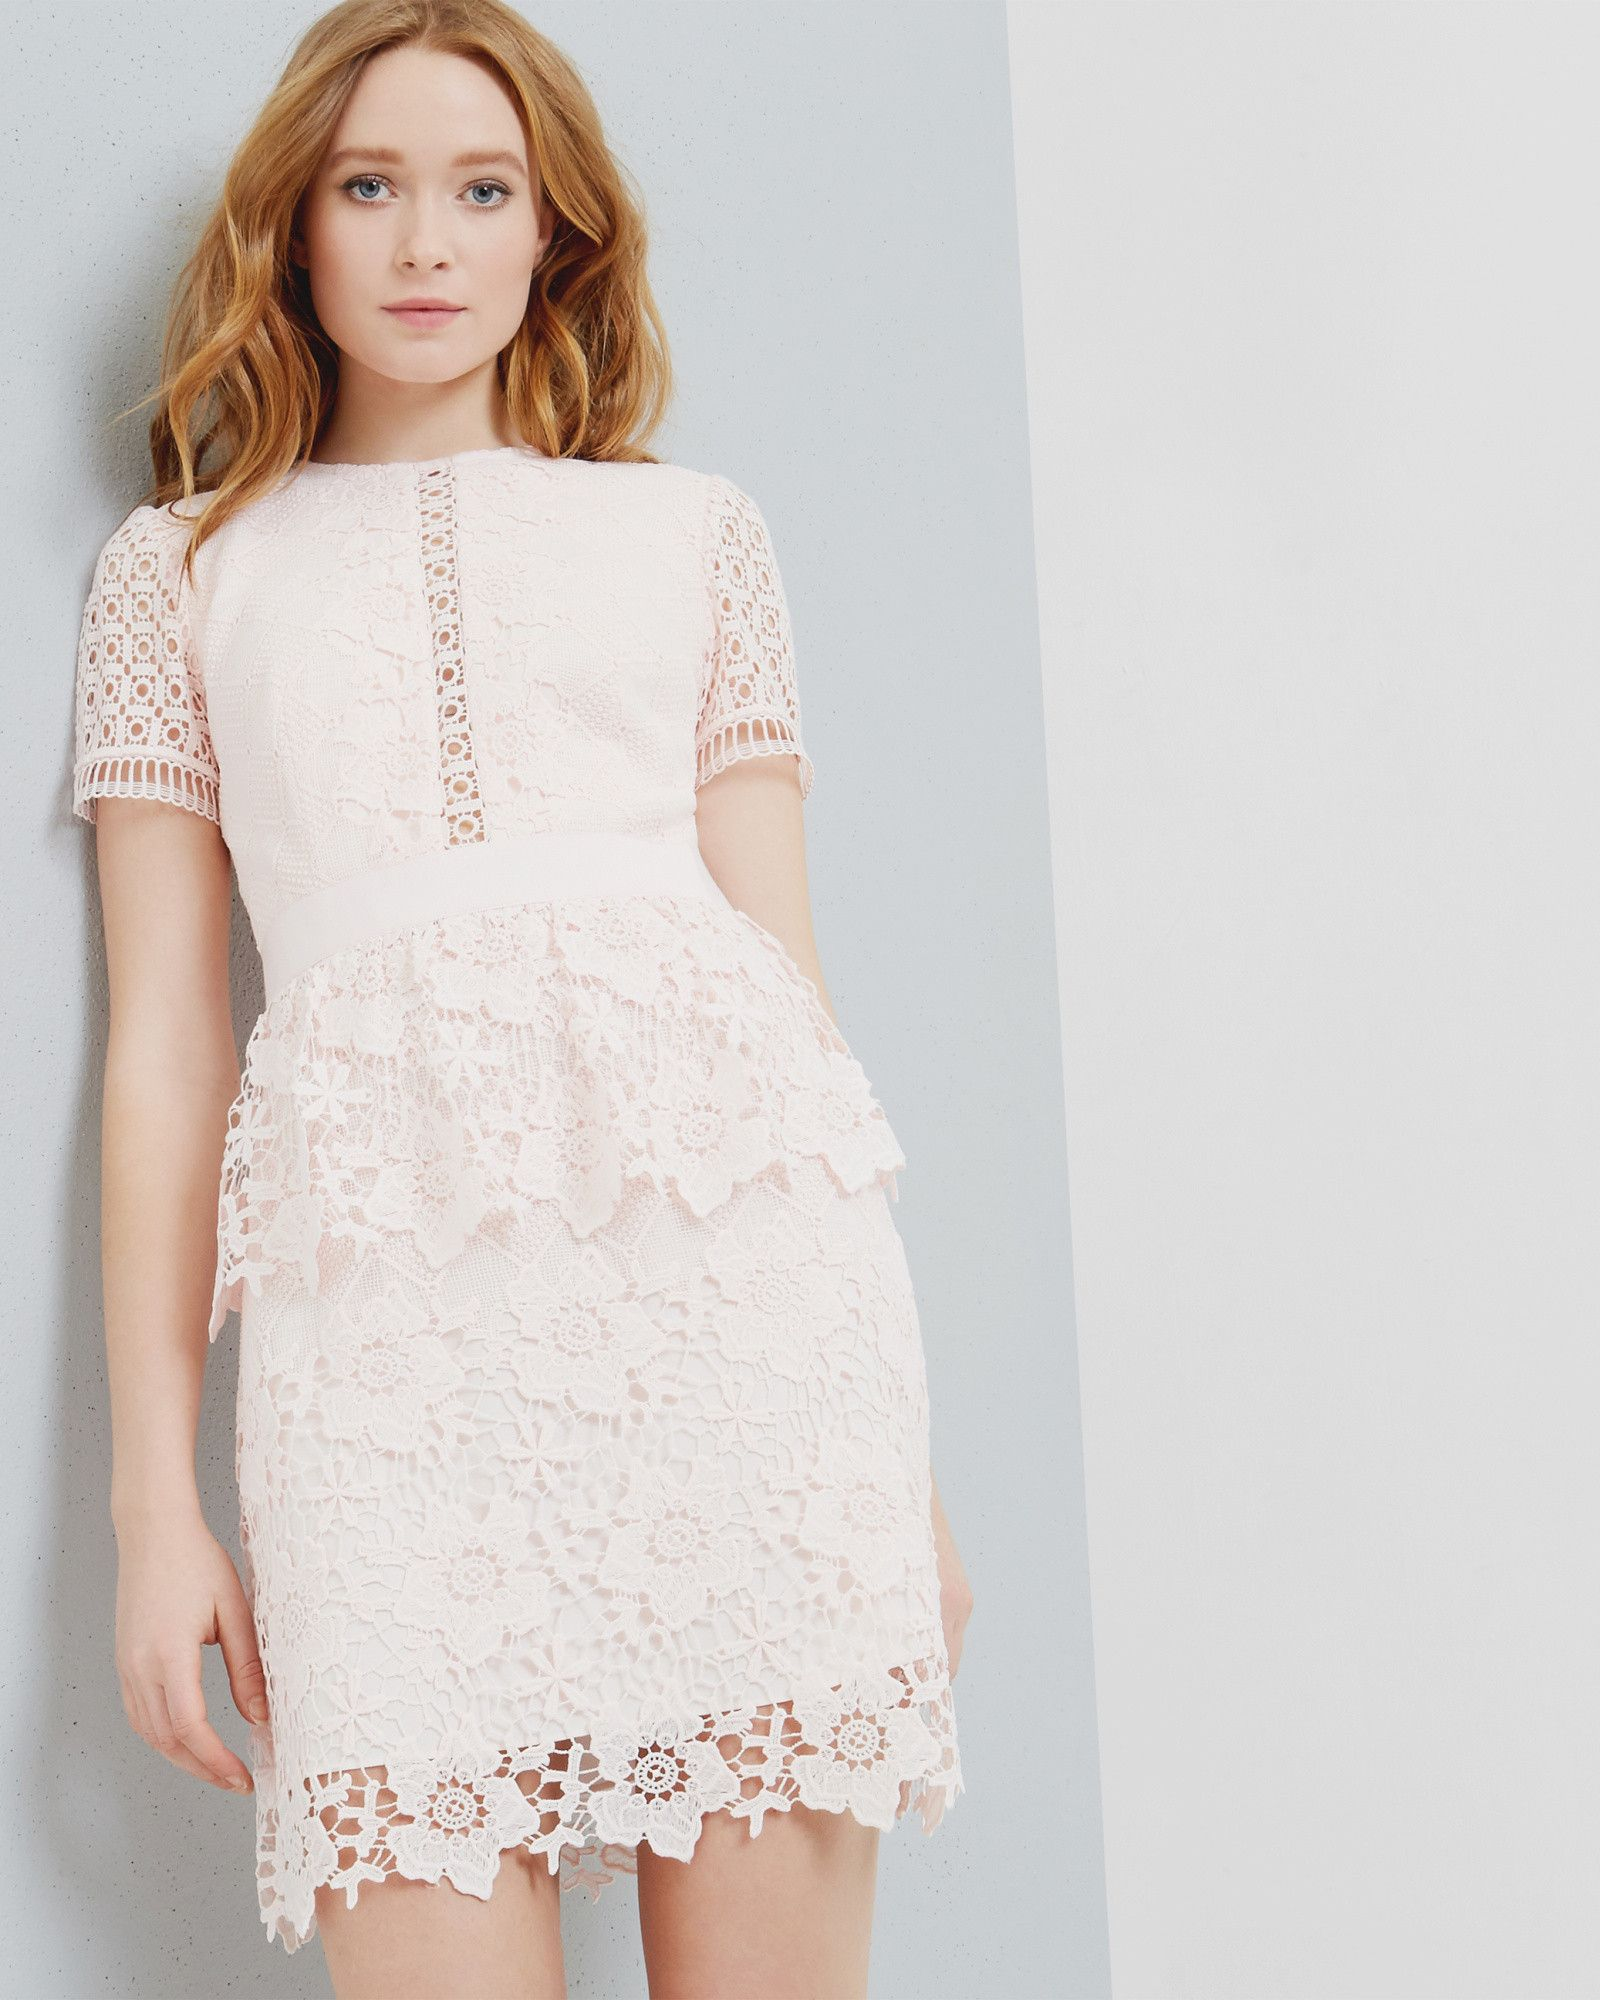 322abf77c7e67 Layered lace dress - Baby Pink